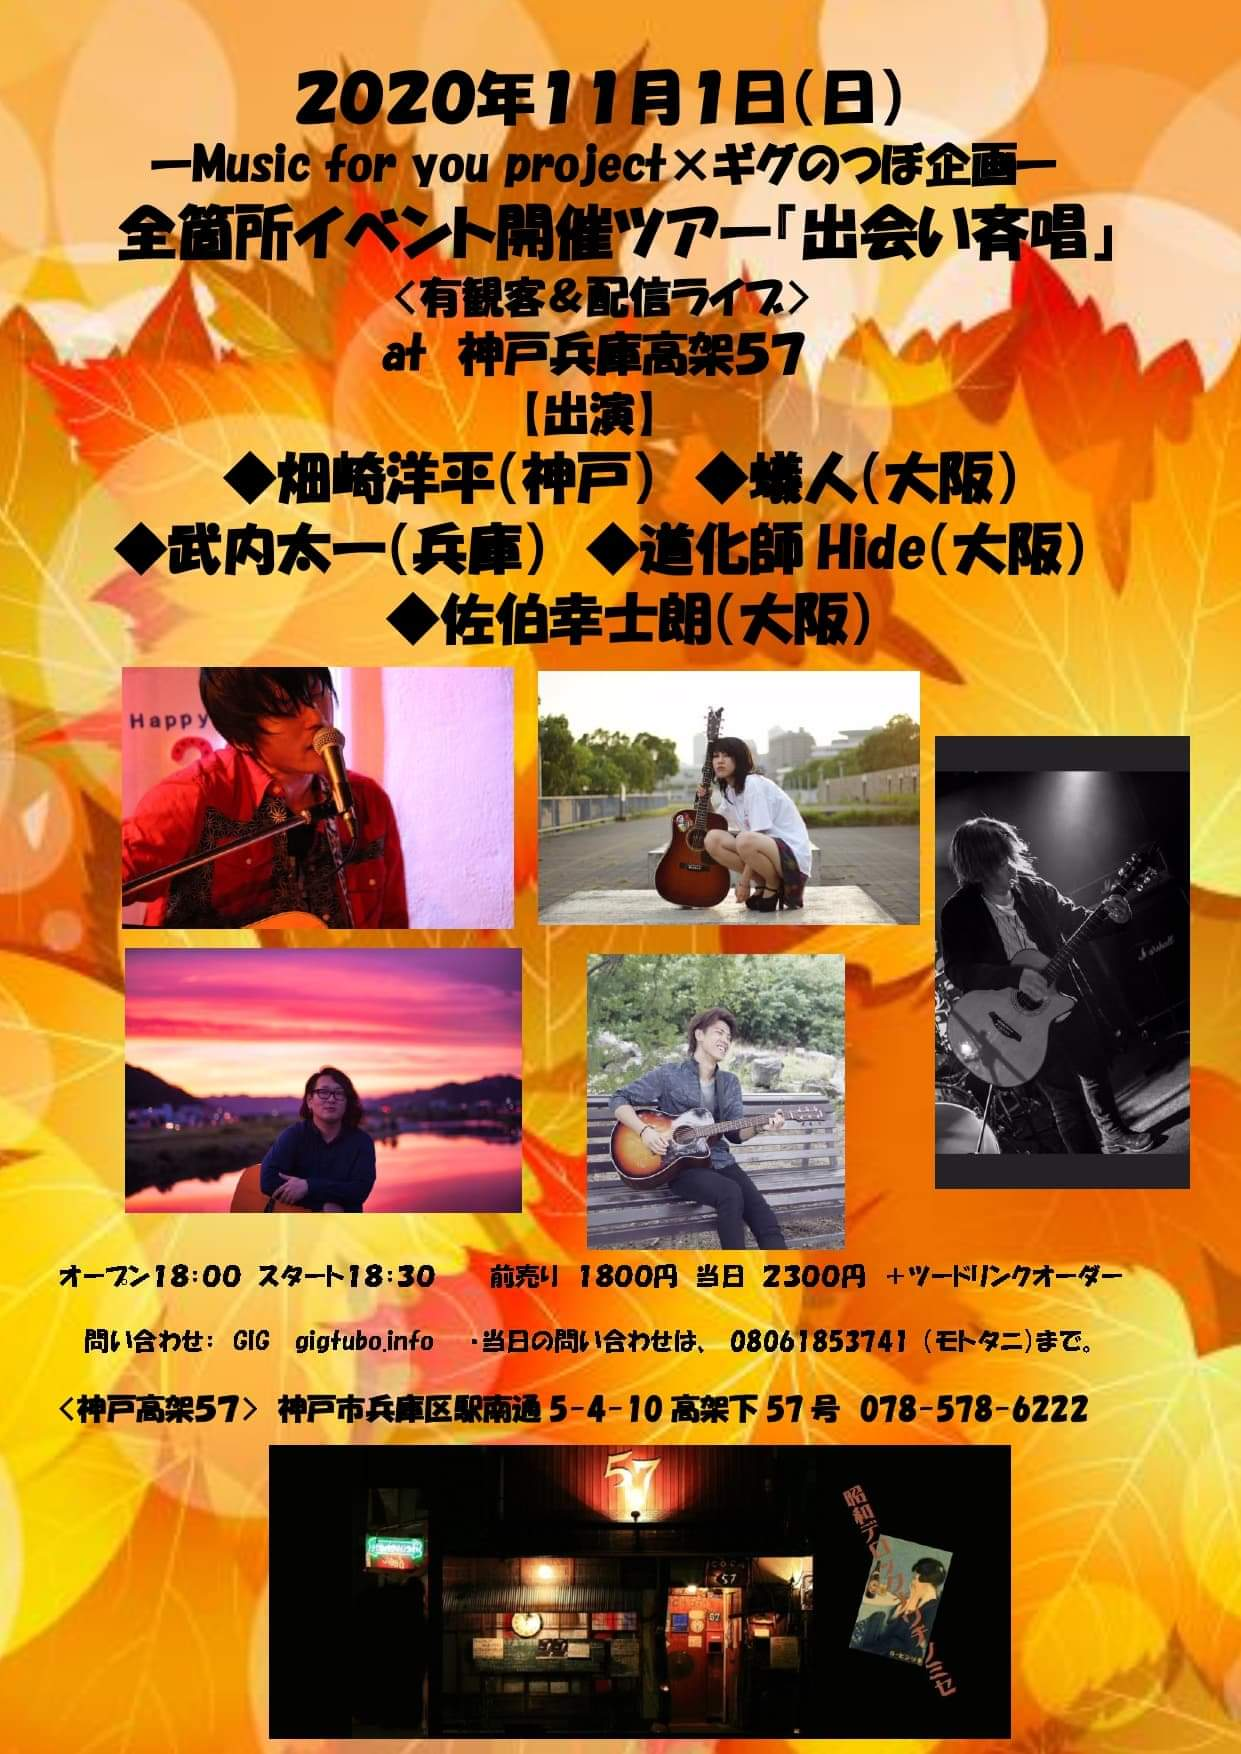 ーMusic for you project×ギグのつぼ企画ー 全箇所イベント開催ツアー『出会い斉唱』     2020/11/1(日) 18:00     神戸高架57     視聴はこちら!     https://twitcasting.tv/c:musicforyouproject?r7372     投げ銭はこちら!     https://passmarket.yahoo.co.jp/event/show/detail/01ase4118nwcq.htmlのつぼ企画 出会い斉唱18時オープン